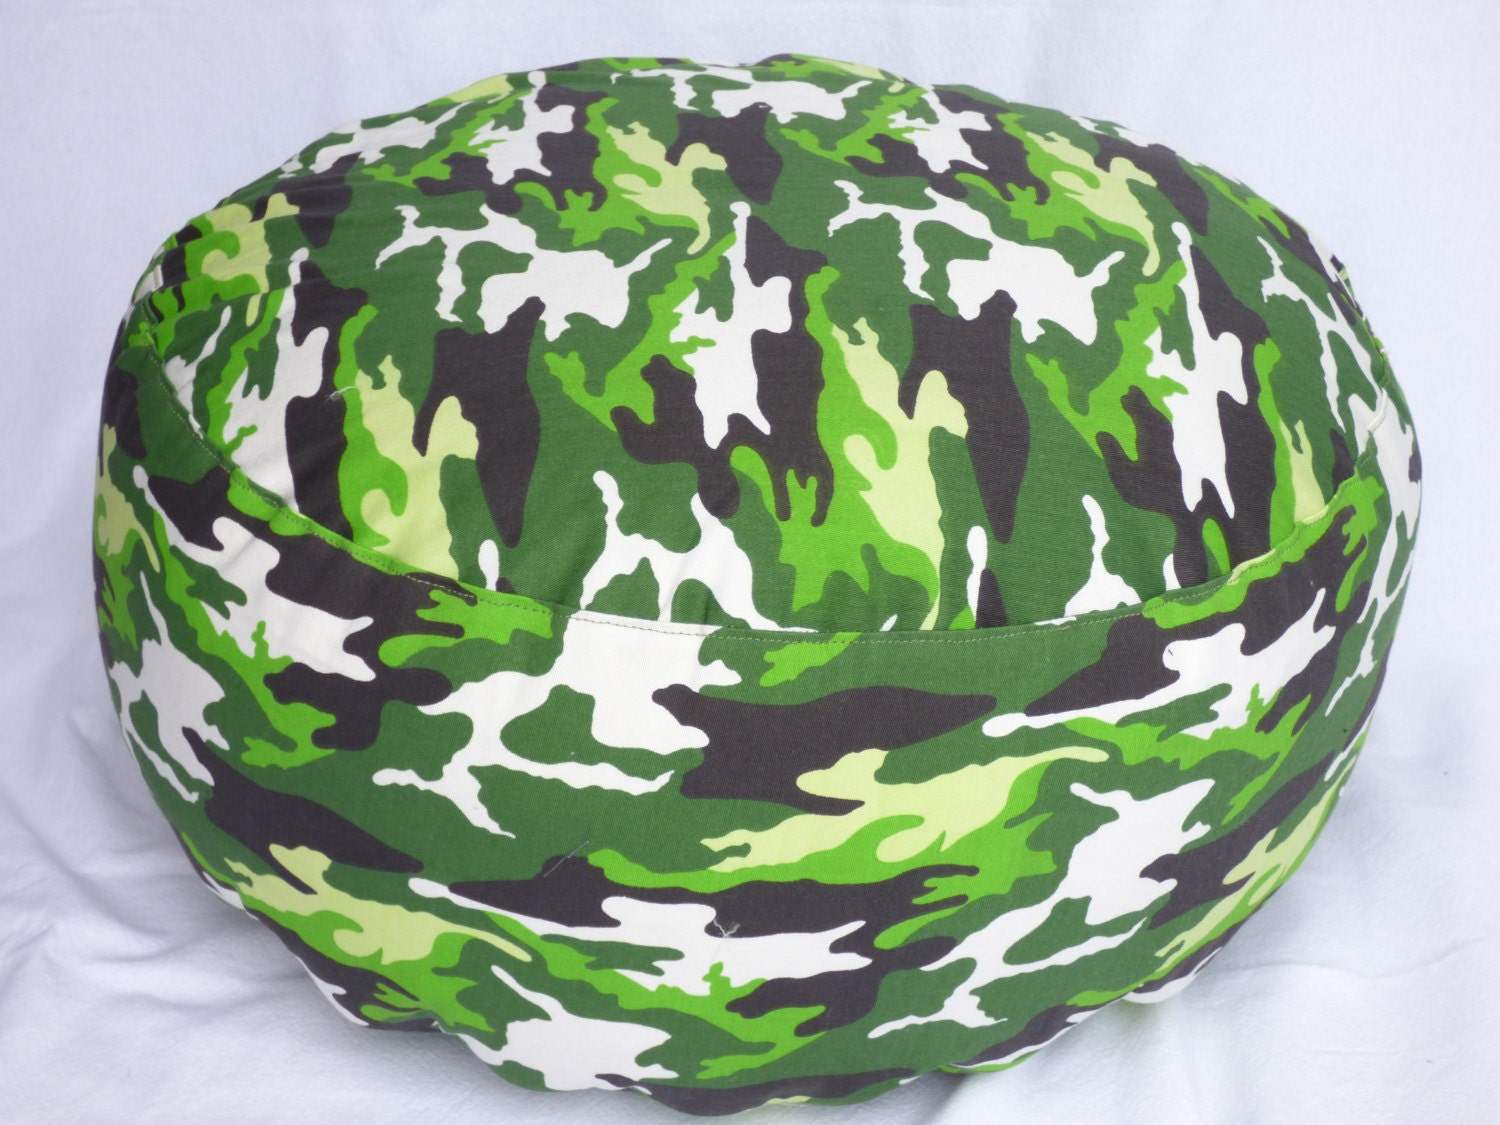 Camouflage 18 inch diameter round floor pouf pillow-cover